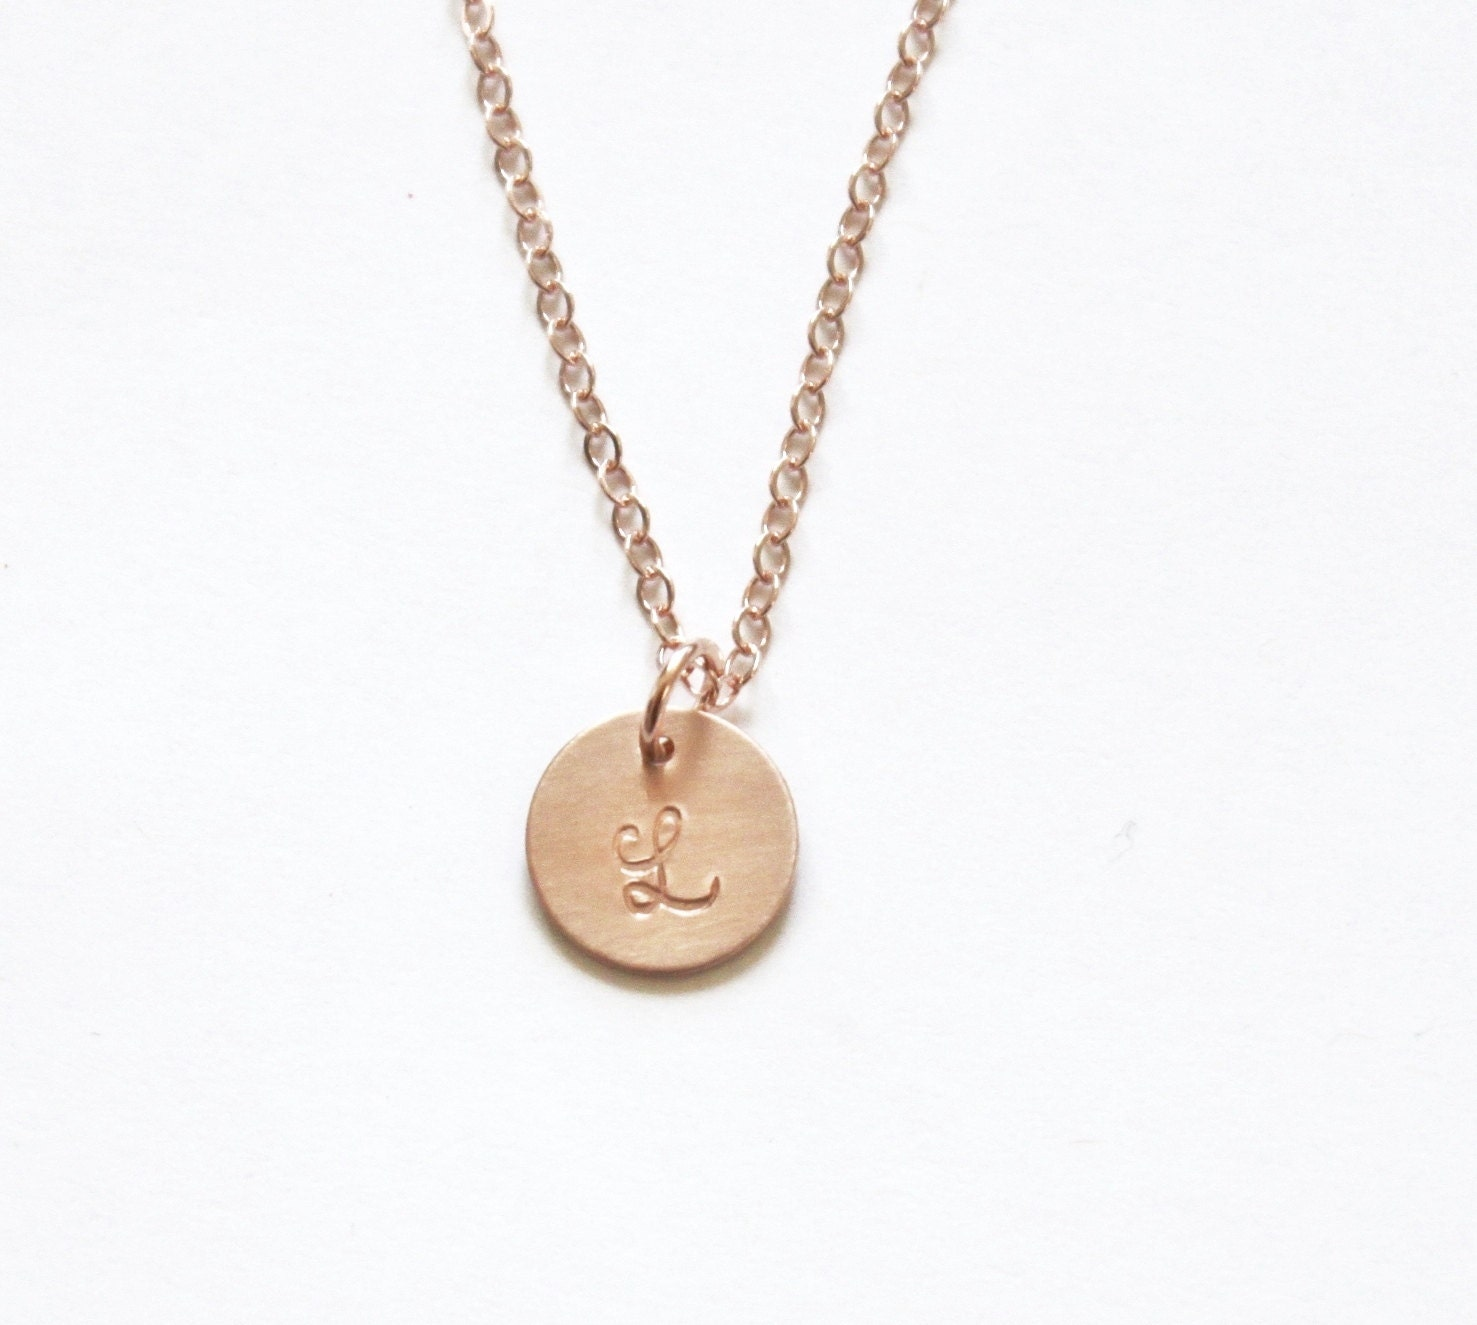 Rose gold necklace initial necklace personalized necklace for Rose gold personalized jewelry